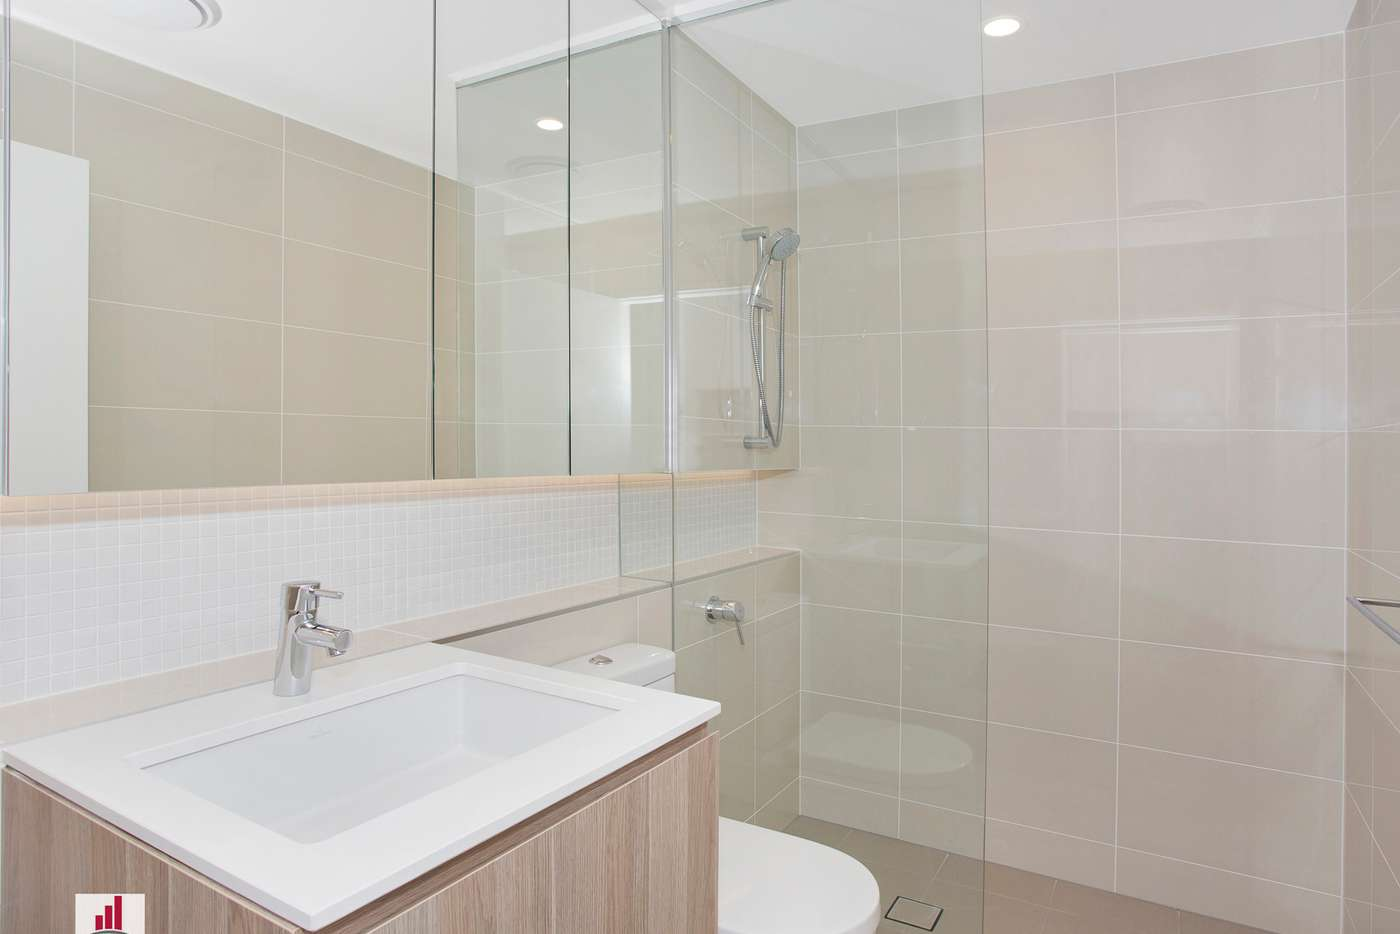 Fifth view of Homely apartment listing, 5408/331 MacArthur Avenue, Hamilton QLD 4007